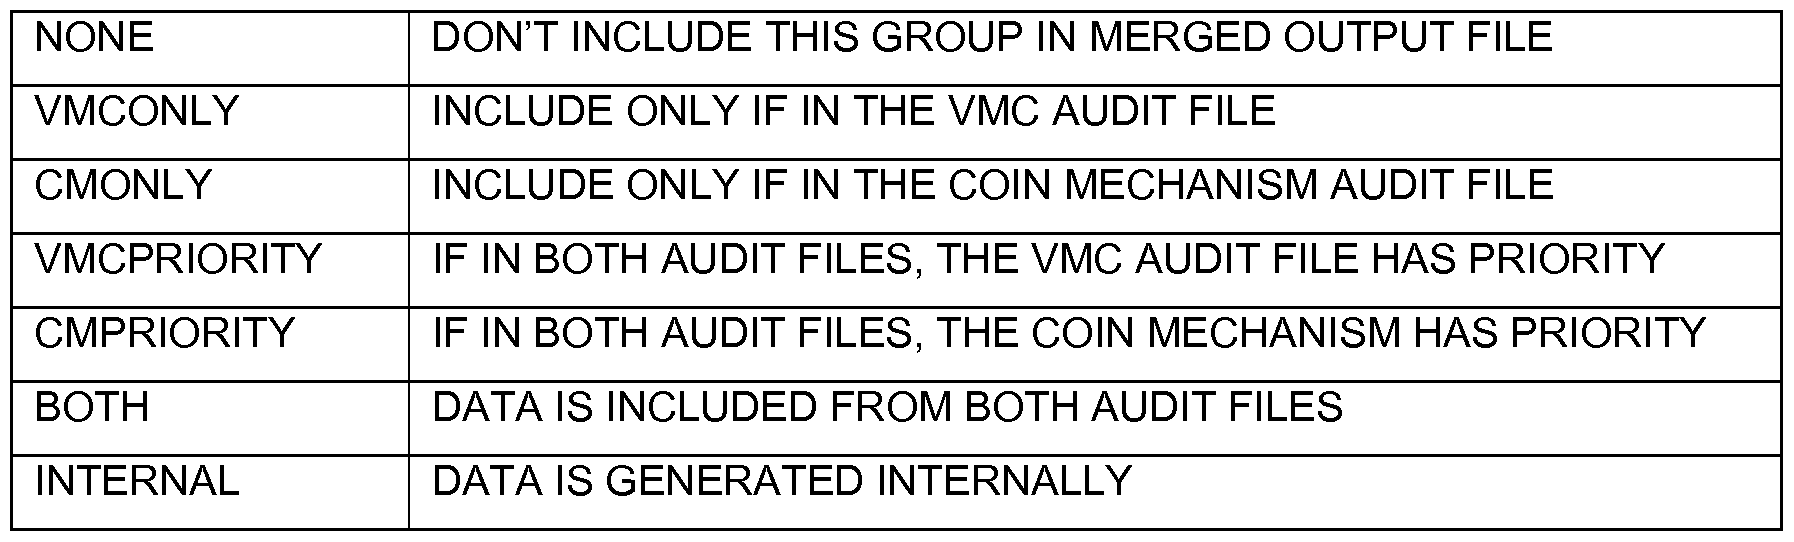 WO2011130177A1 - Generating a single audit file from multiple